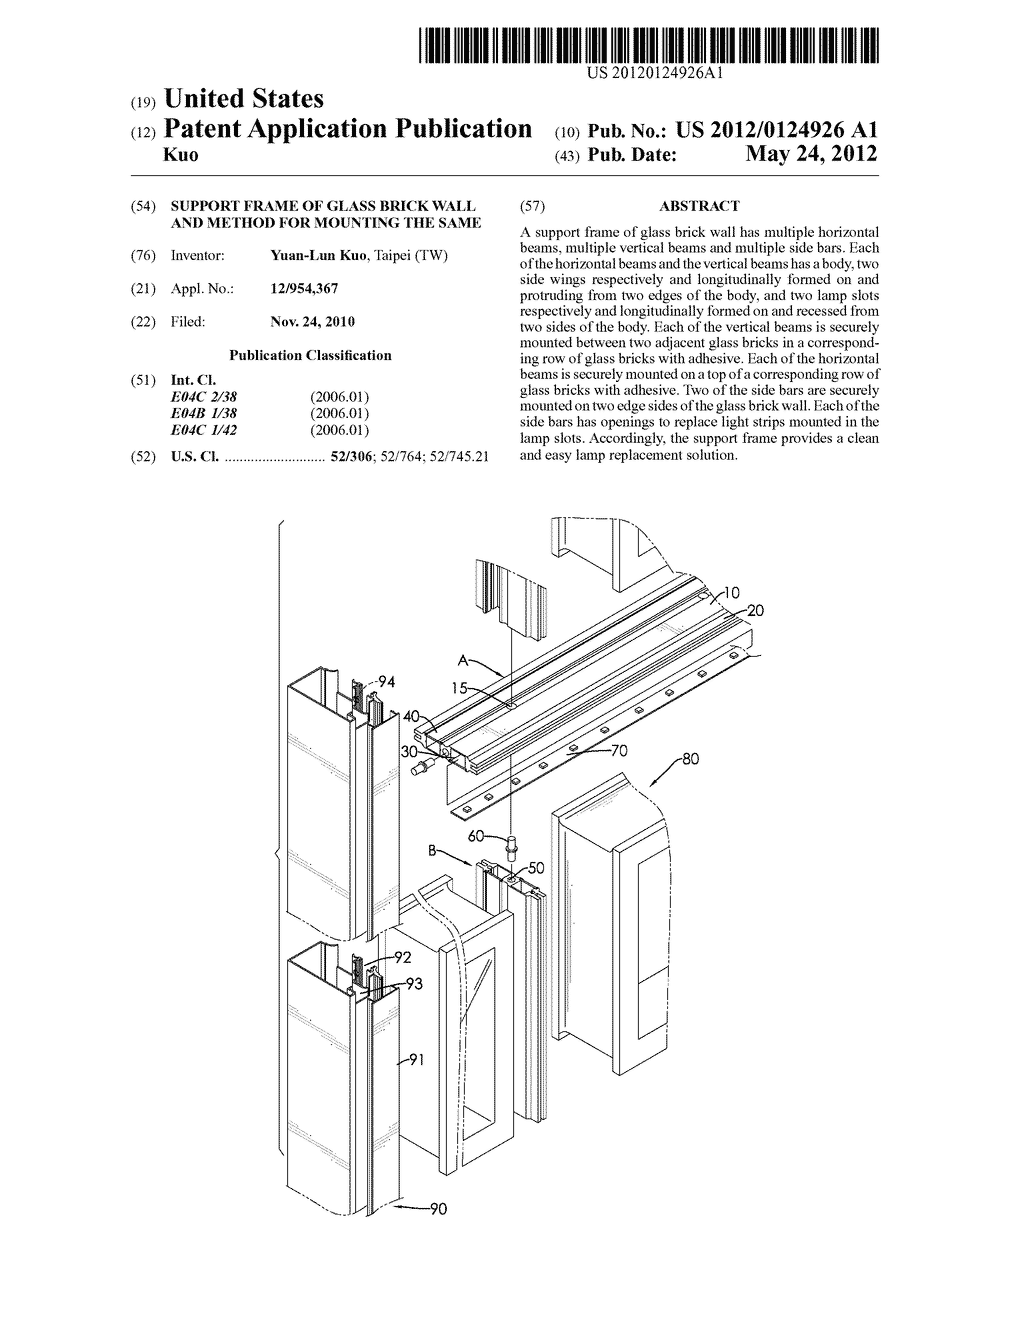 Support Frame of Glass Brick Wall and Method for Mounting